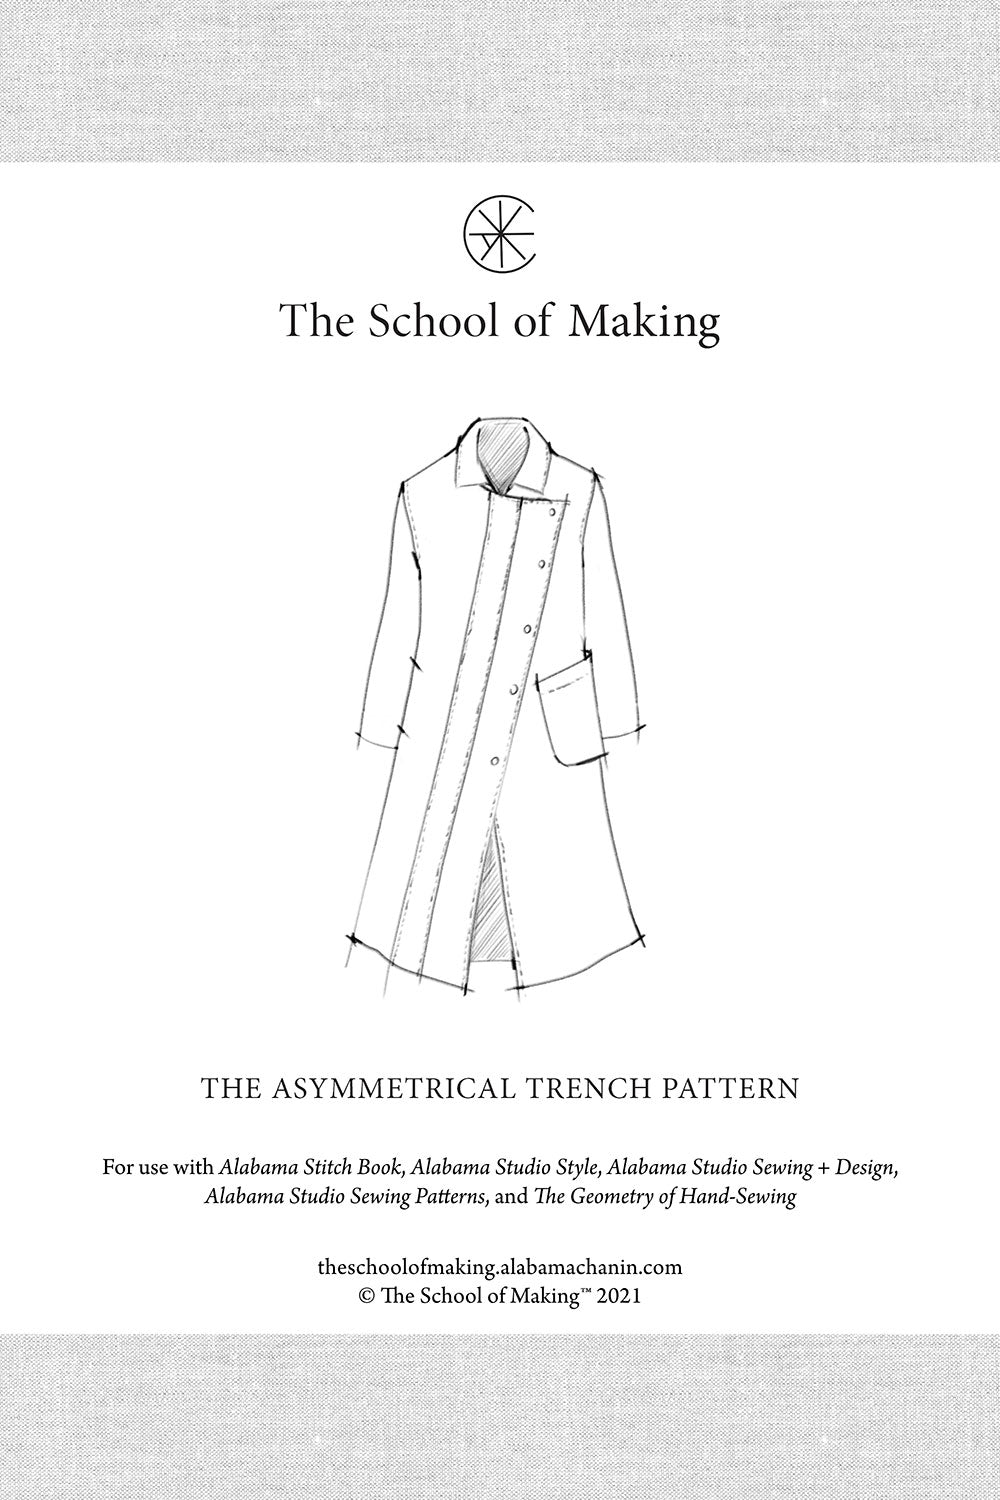 The School of Making The Asymmetrical Trench Pattern for DIY Maker Projects